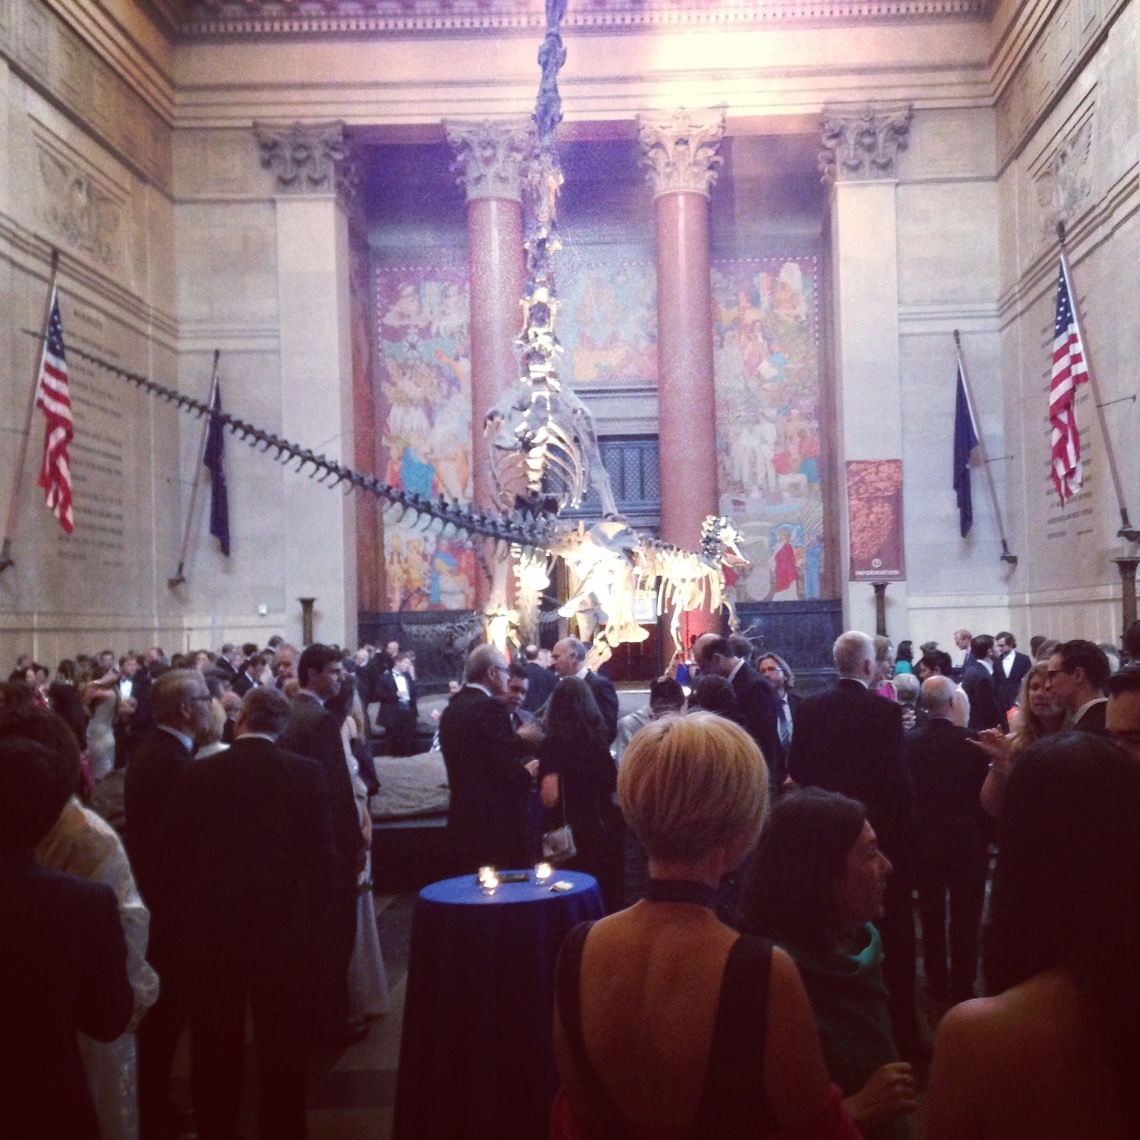 Rainforest Alliance Gala Reception at New York's Metropolitan Museum of Art foyer